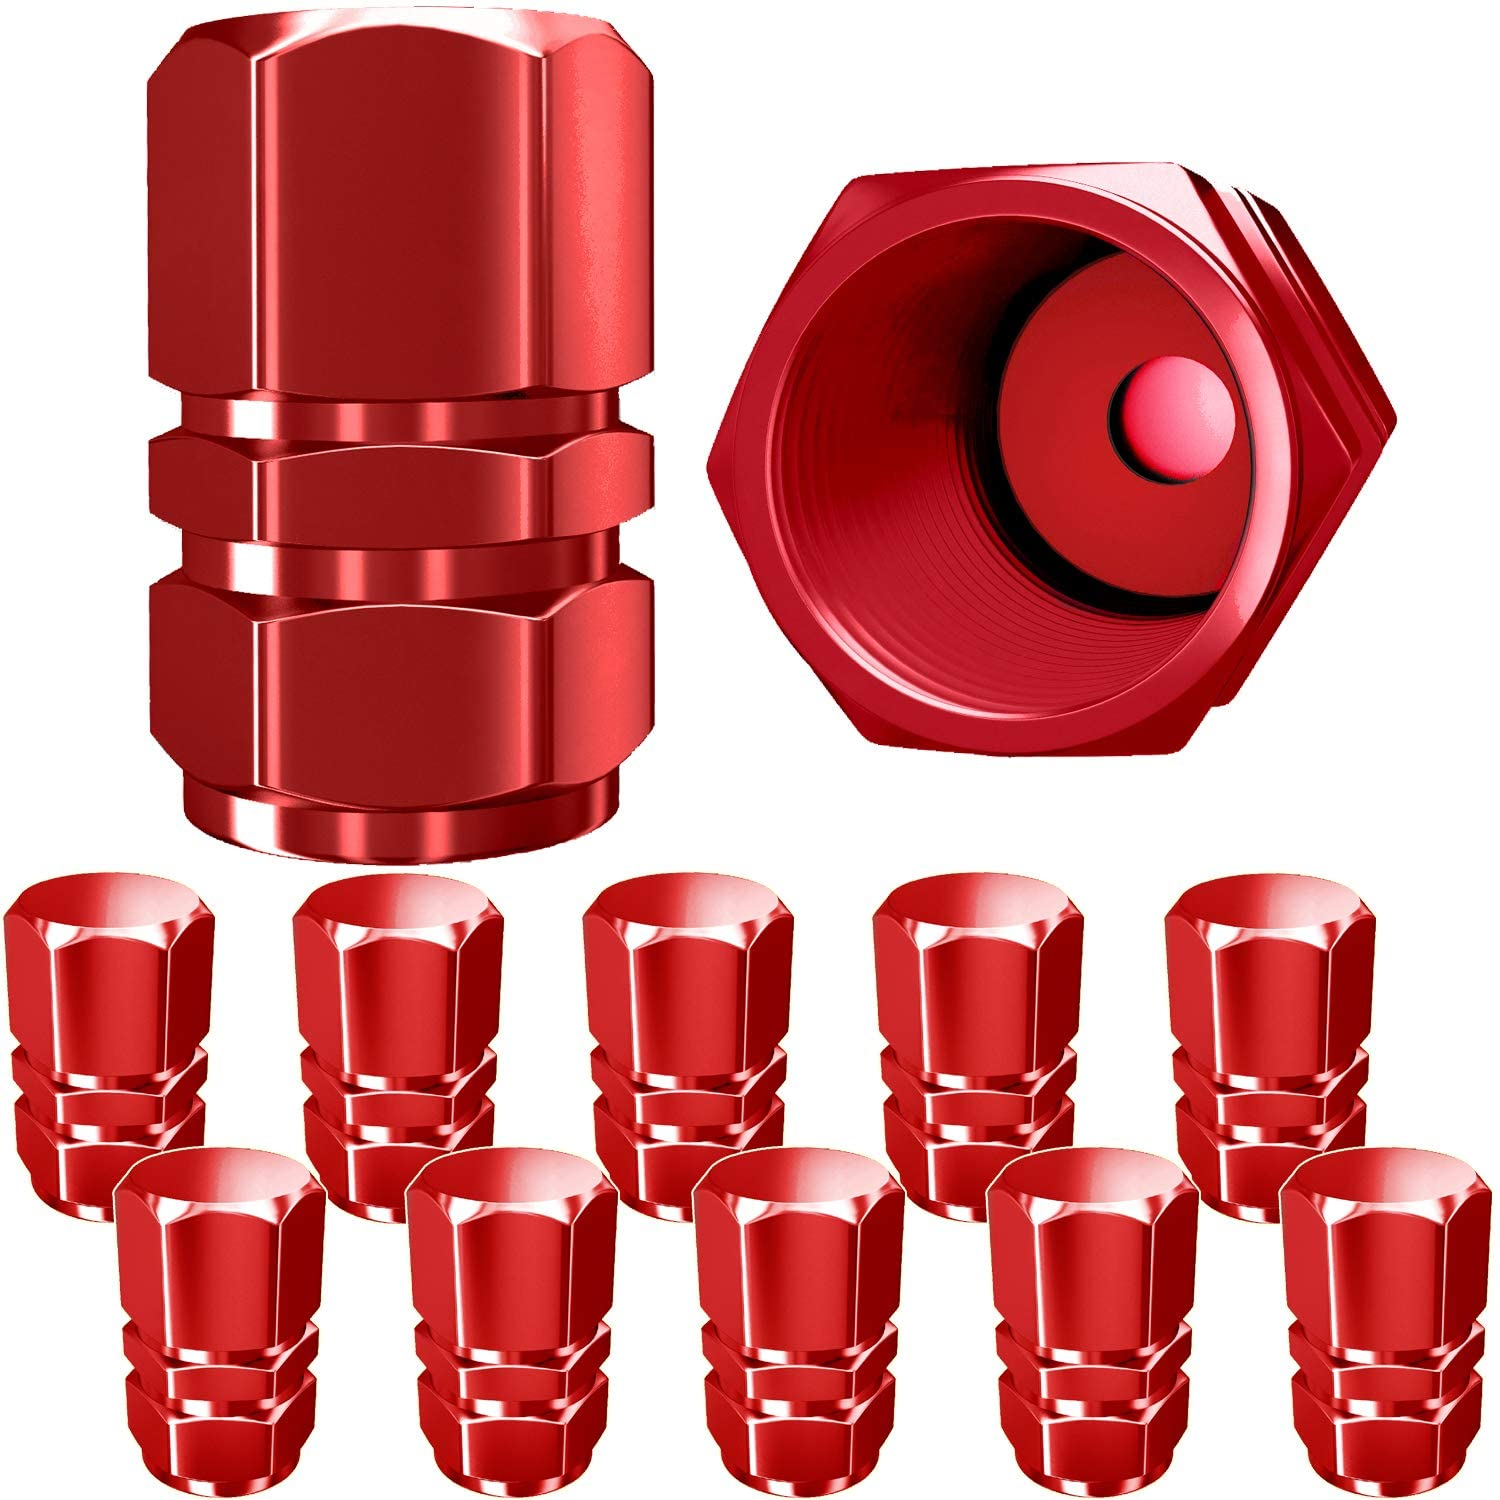 Cuque Tire Valve Stem Red 4 Pcs Universal Aluminum Alloy Tyre Valve Stems with Dust Cover for Bicycle Bike